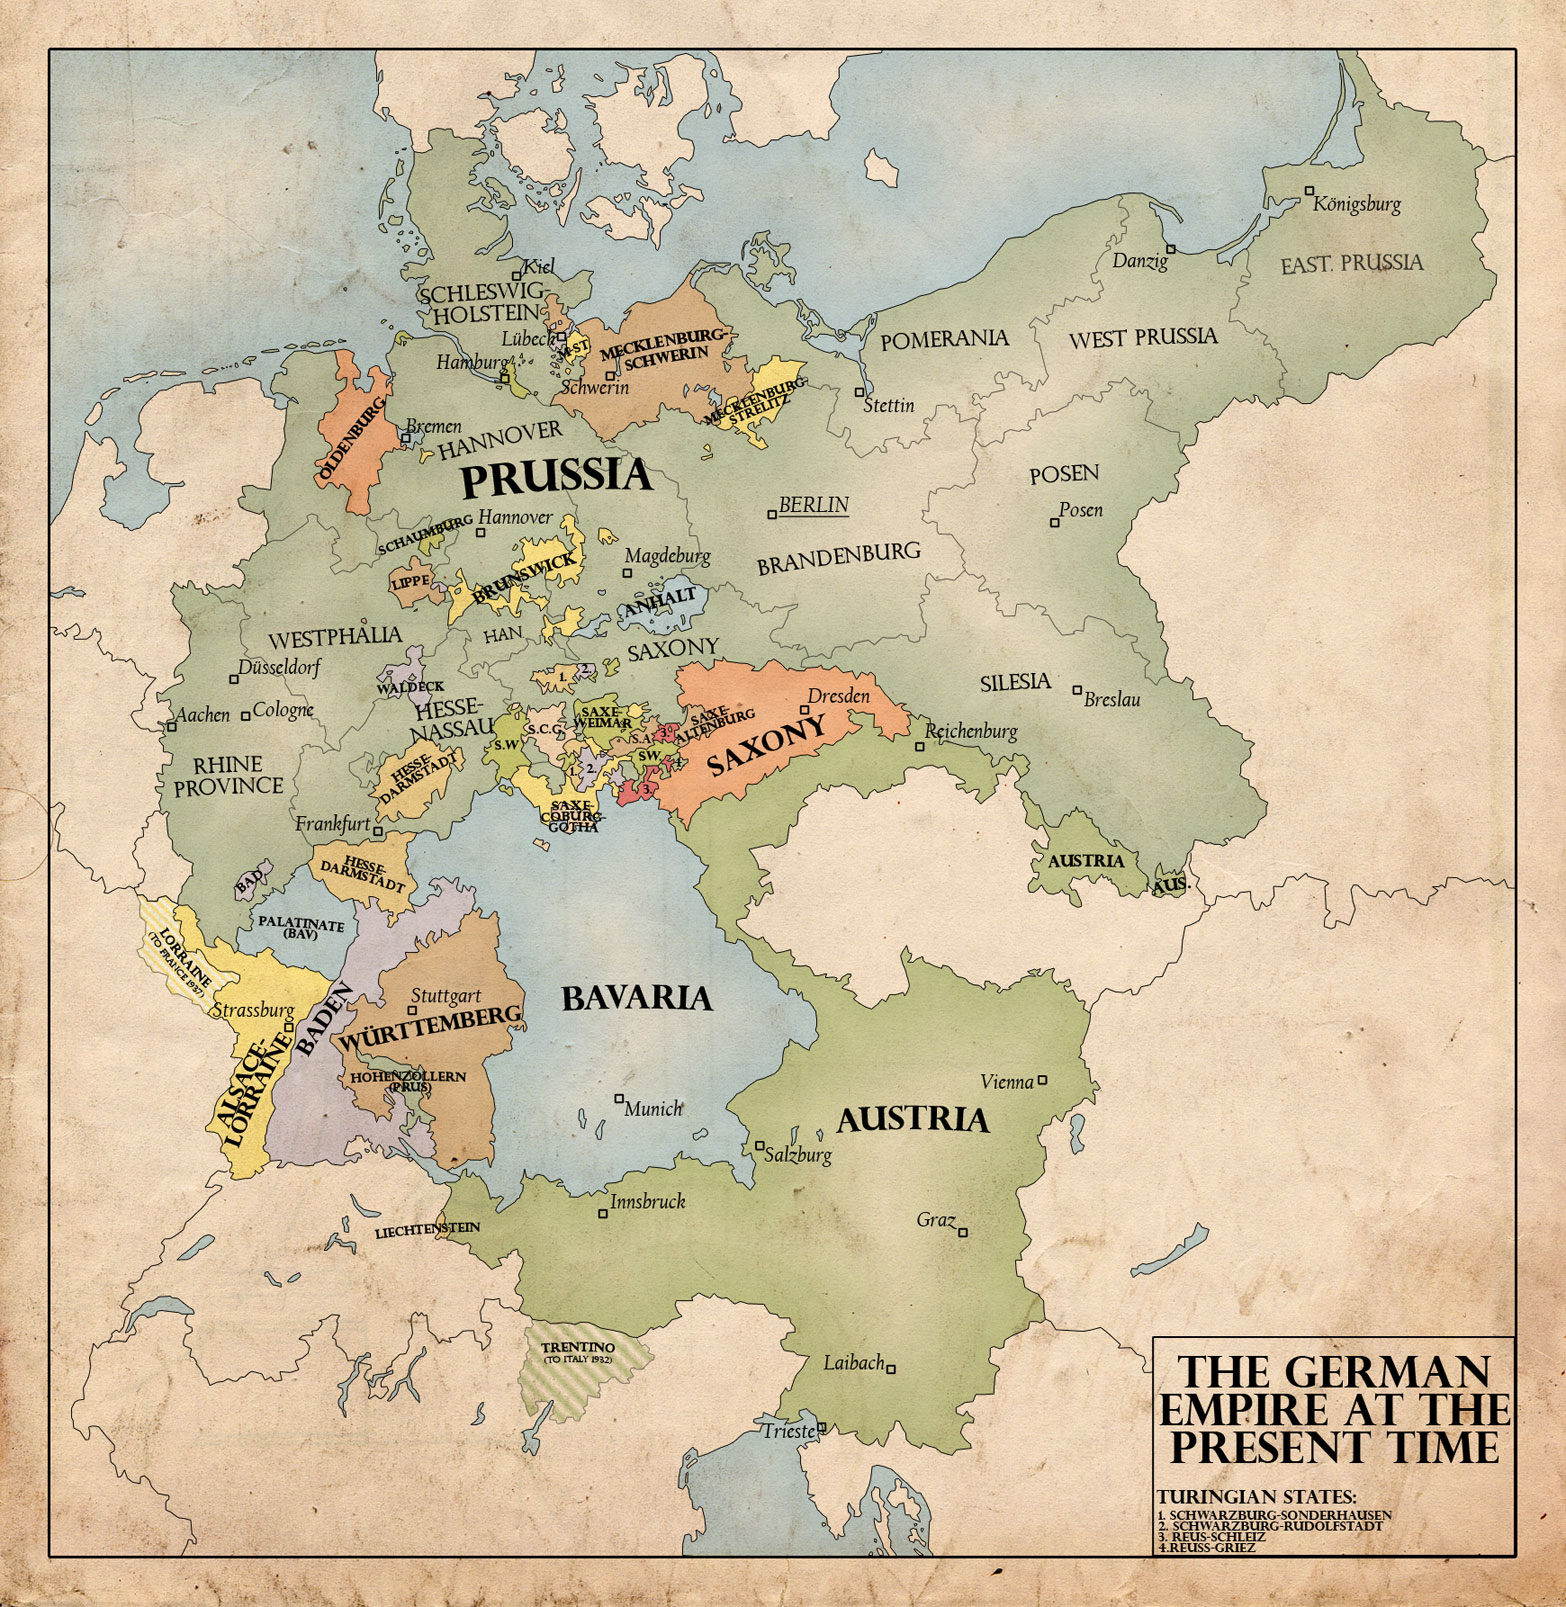 Map Of Germany In 1940.The German Empire 1940 By Edthomasten On Deviantart